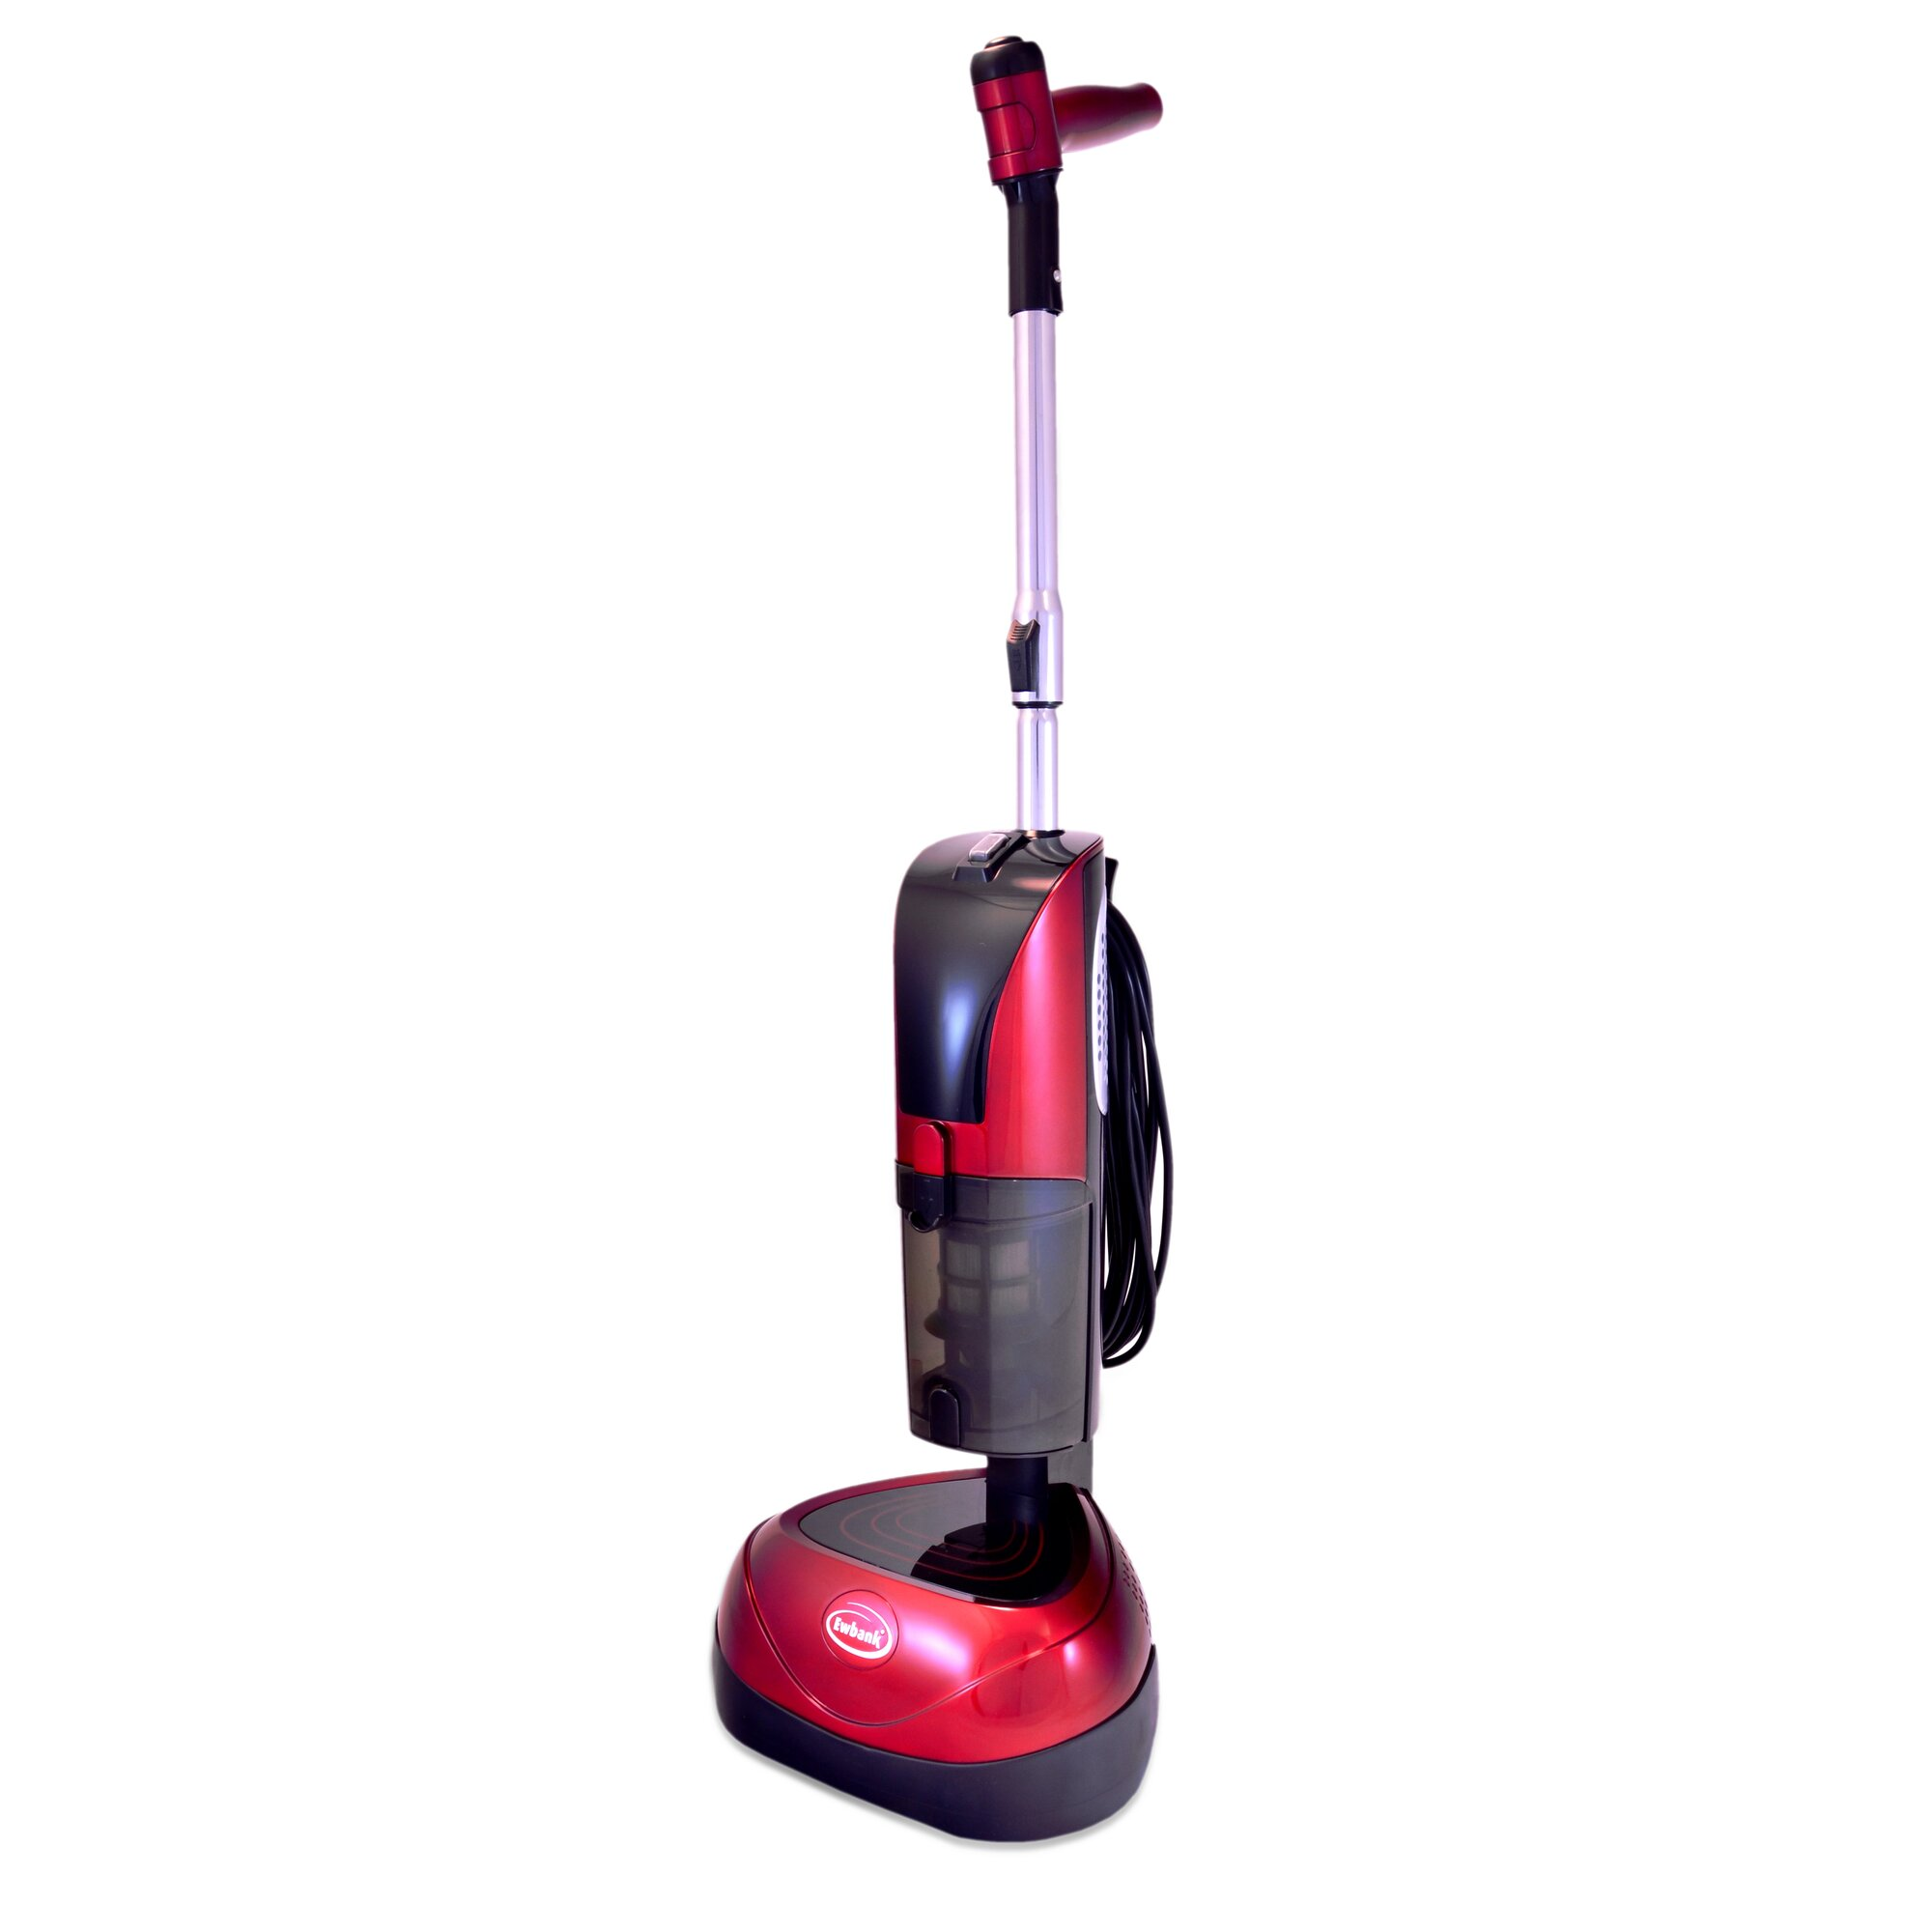 Tile Floor Scrubber ma10 12e upright floor scrubber with off aisle and carpet kit 4 In 1 Floor Cleanerscrubberpolisher And Vacuum